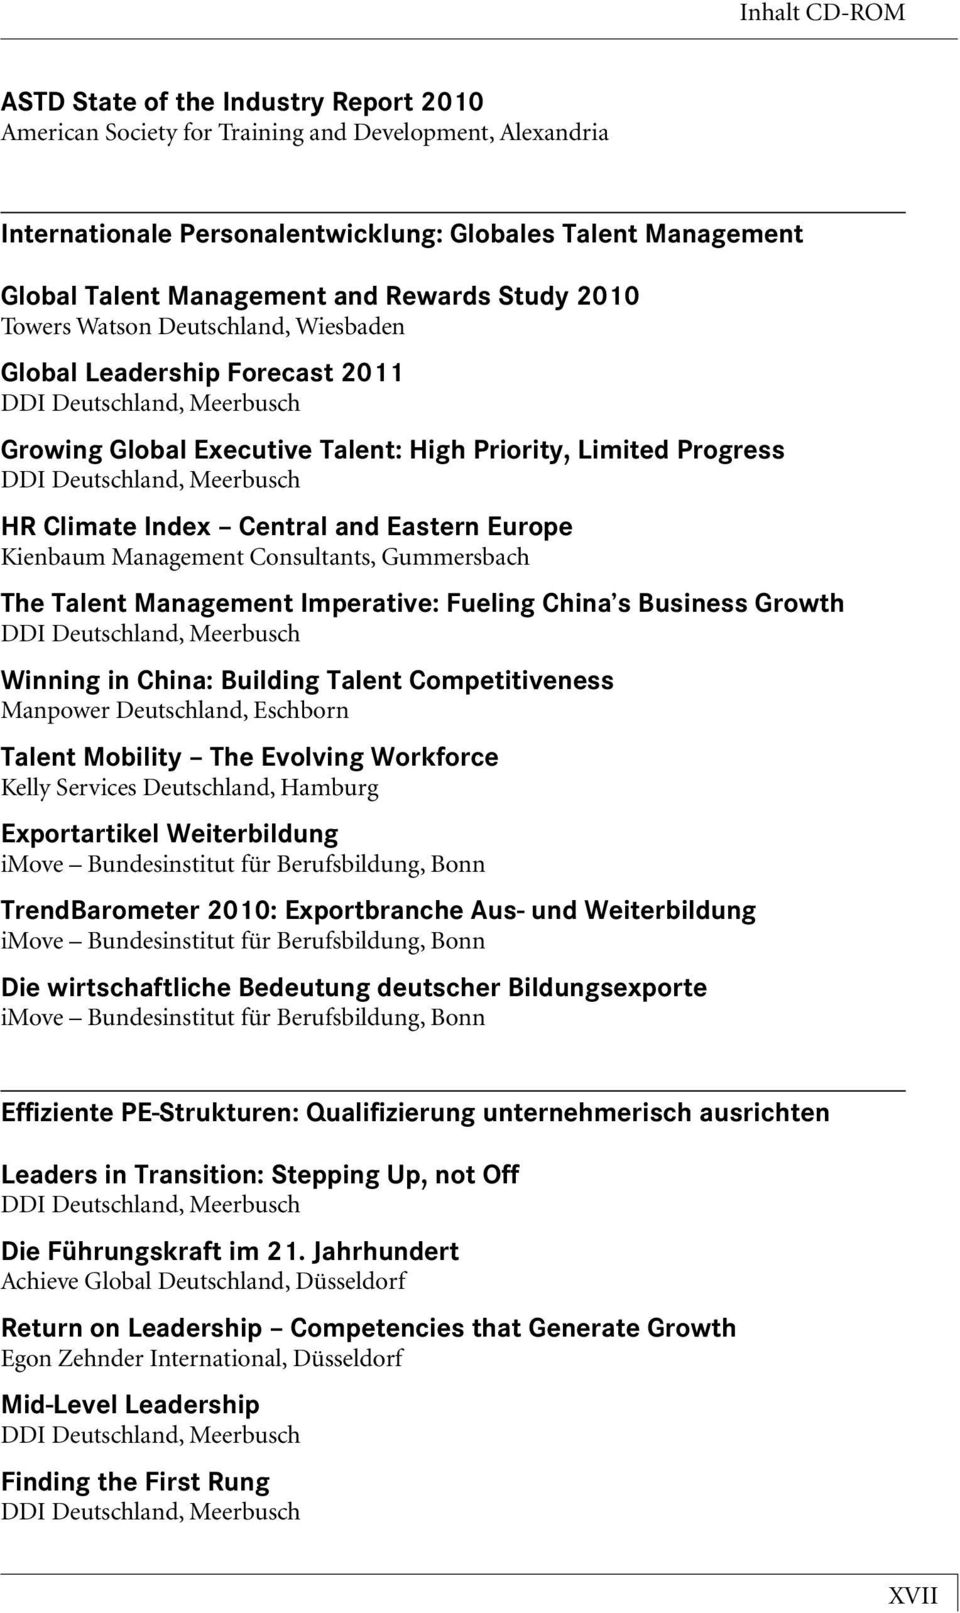 Europe The Talent Management Imperative: Fueling China s Business Growth Winning in China: Building Talent Competitiveness Manpower Deutschland, Eschborn Talent Mobility The Evolving Workforce Kelly